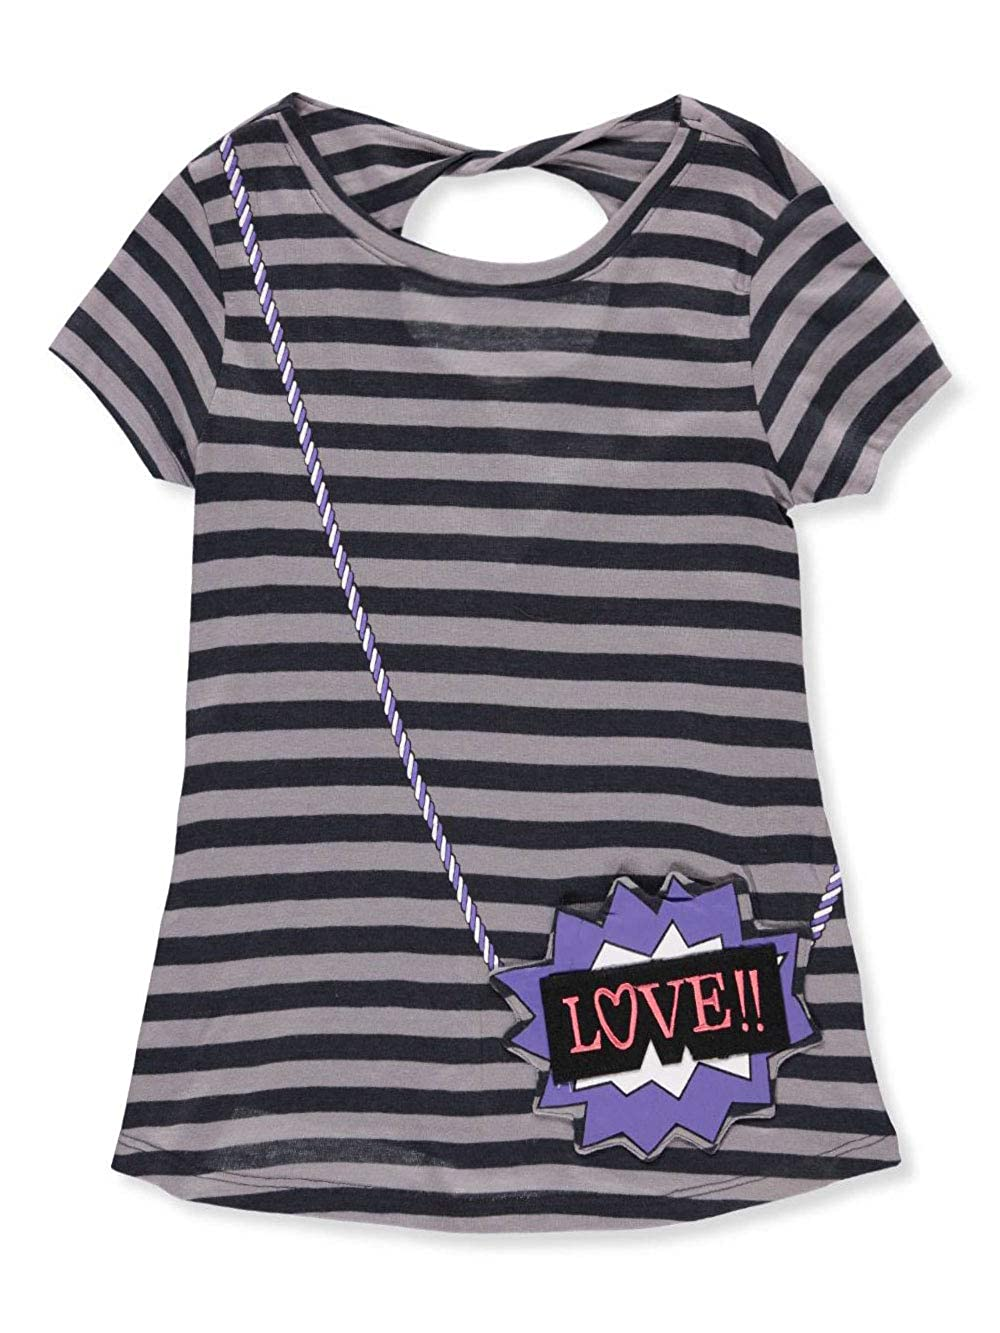 Jessica Simpson Girls' Top